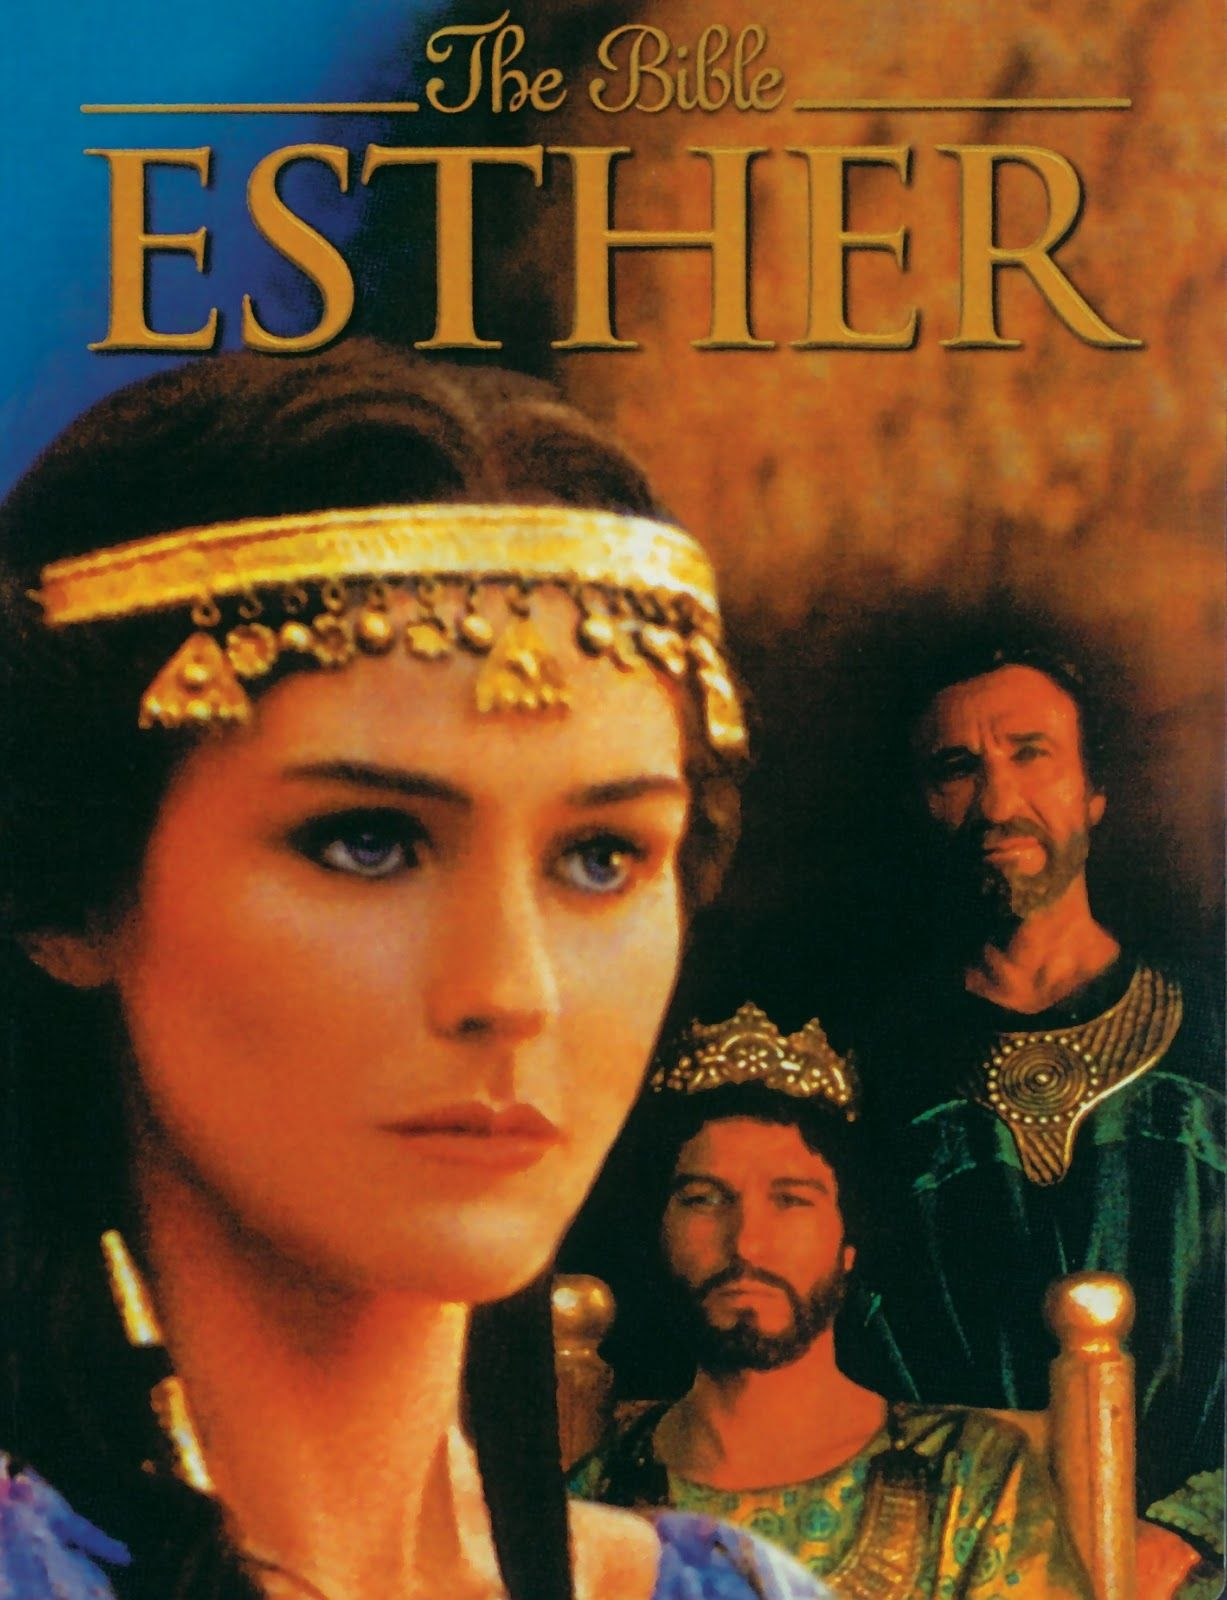 Pin by 𝓐𝔫𝔤𝔢𝔩𝔰 𝔏𝔬𝓿𝔢 on queen esther esther movie the